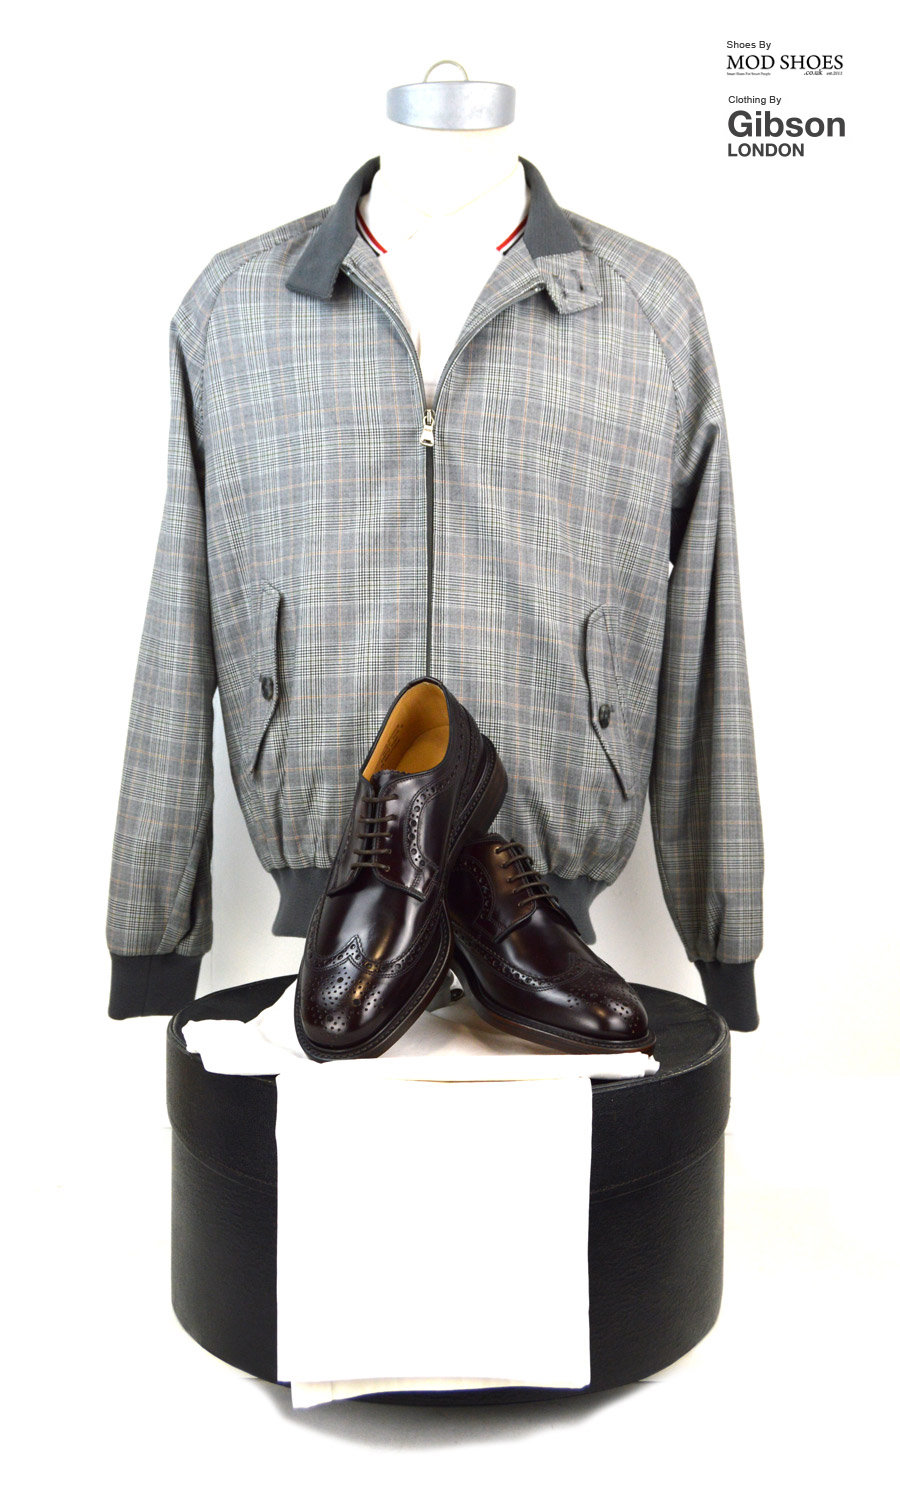 modshoes-loake-toyals-with-harrington-jacket-prince-of-wales-gibson-clothing